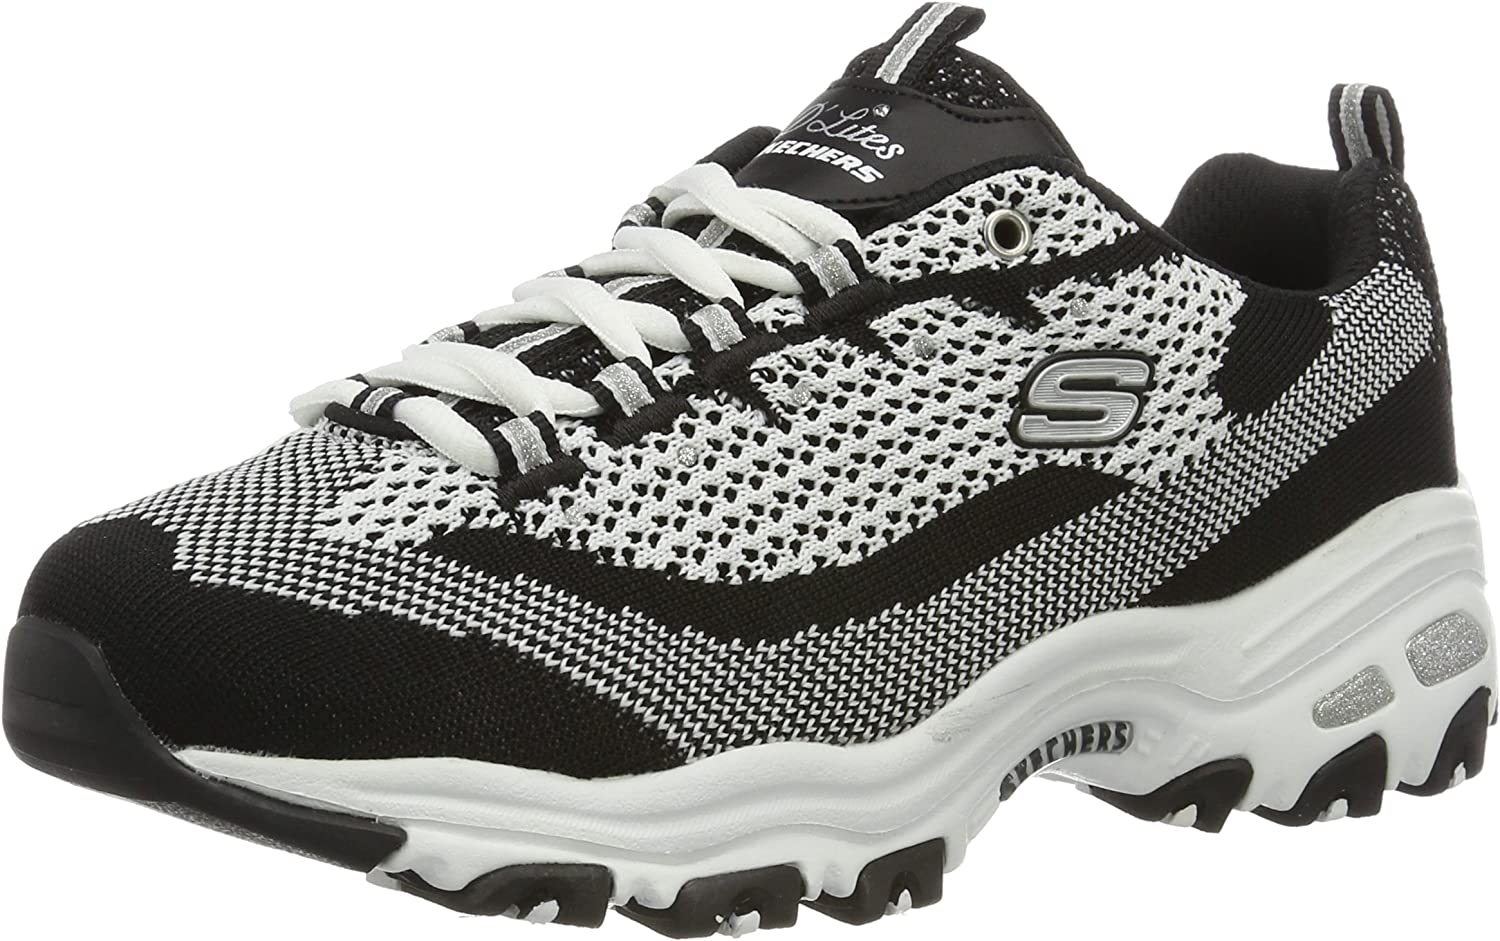 Skechers Womens D'Lites - Reinvention Sneakers